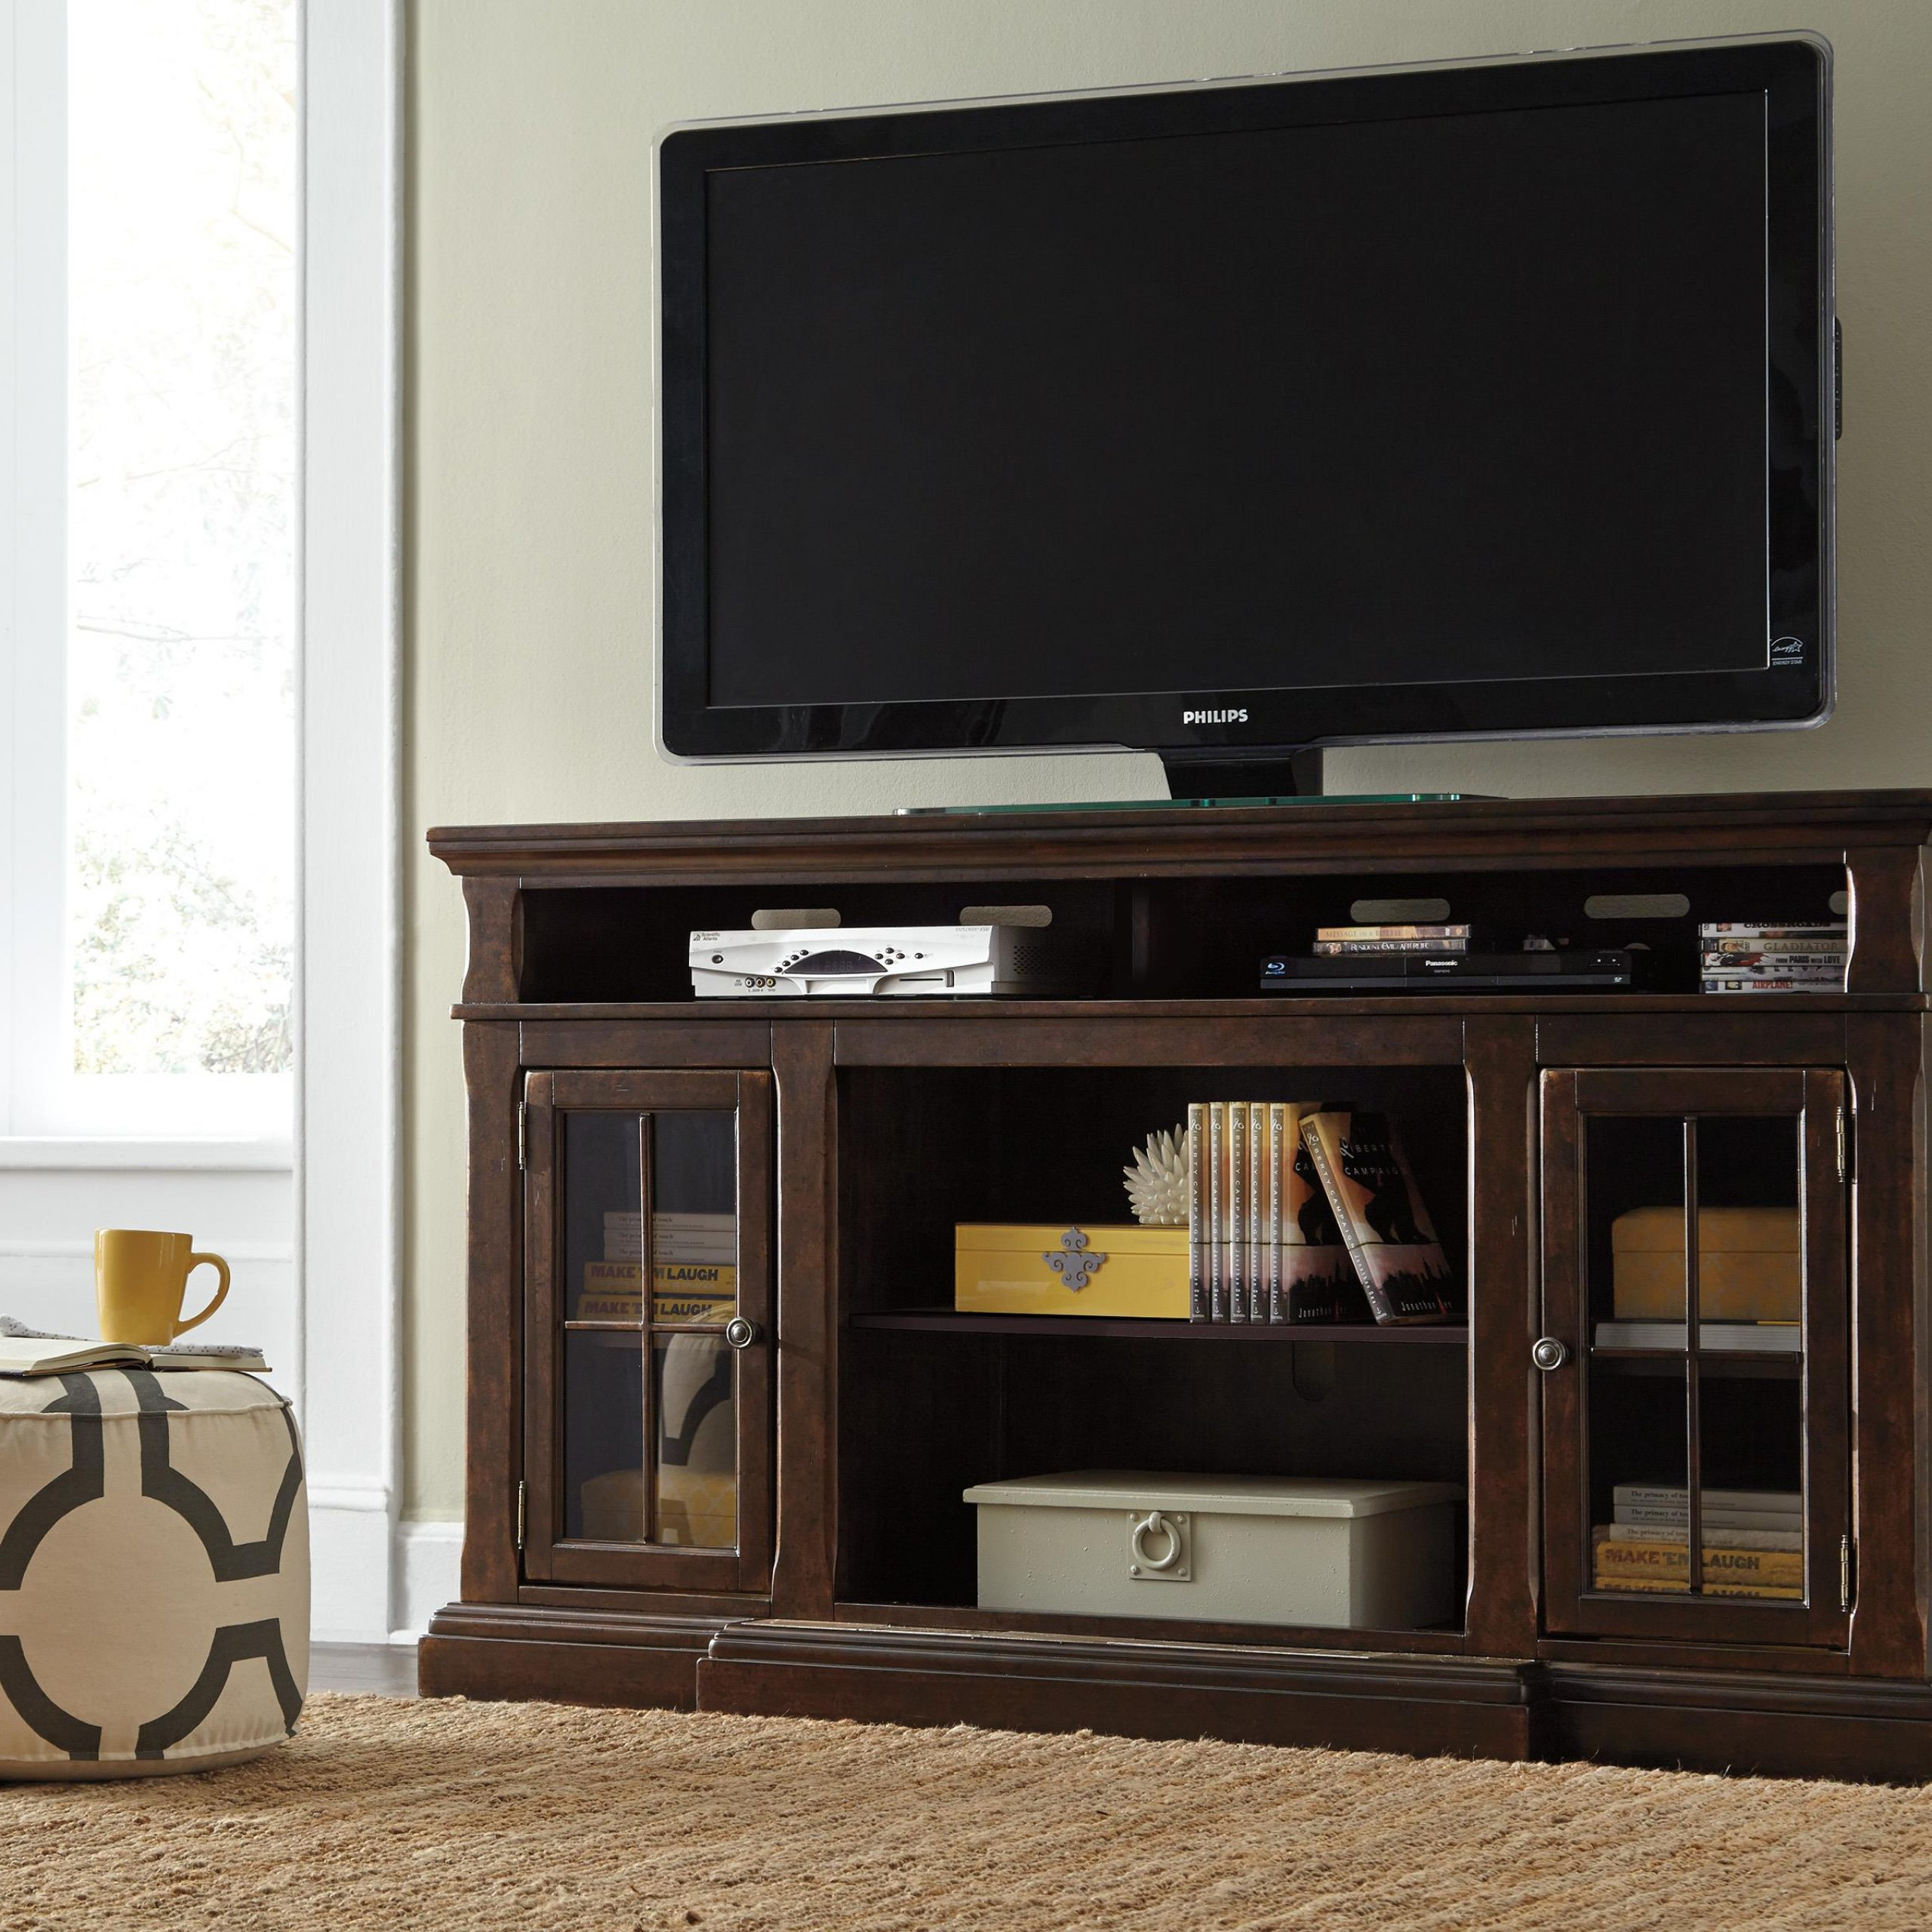 Extra Large Tv Stand With Breakfront & 2 Glass Doors Intended For Tv Cabinets With Glass Doors (View 8 of 15)